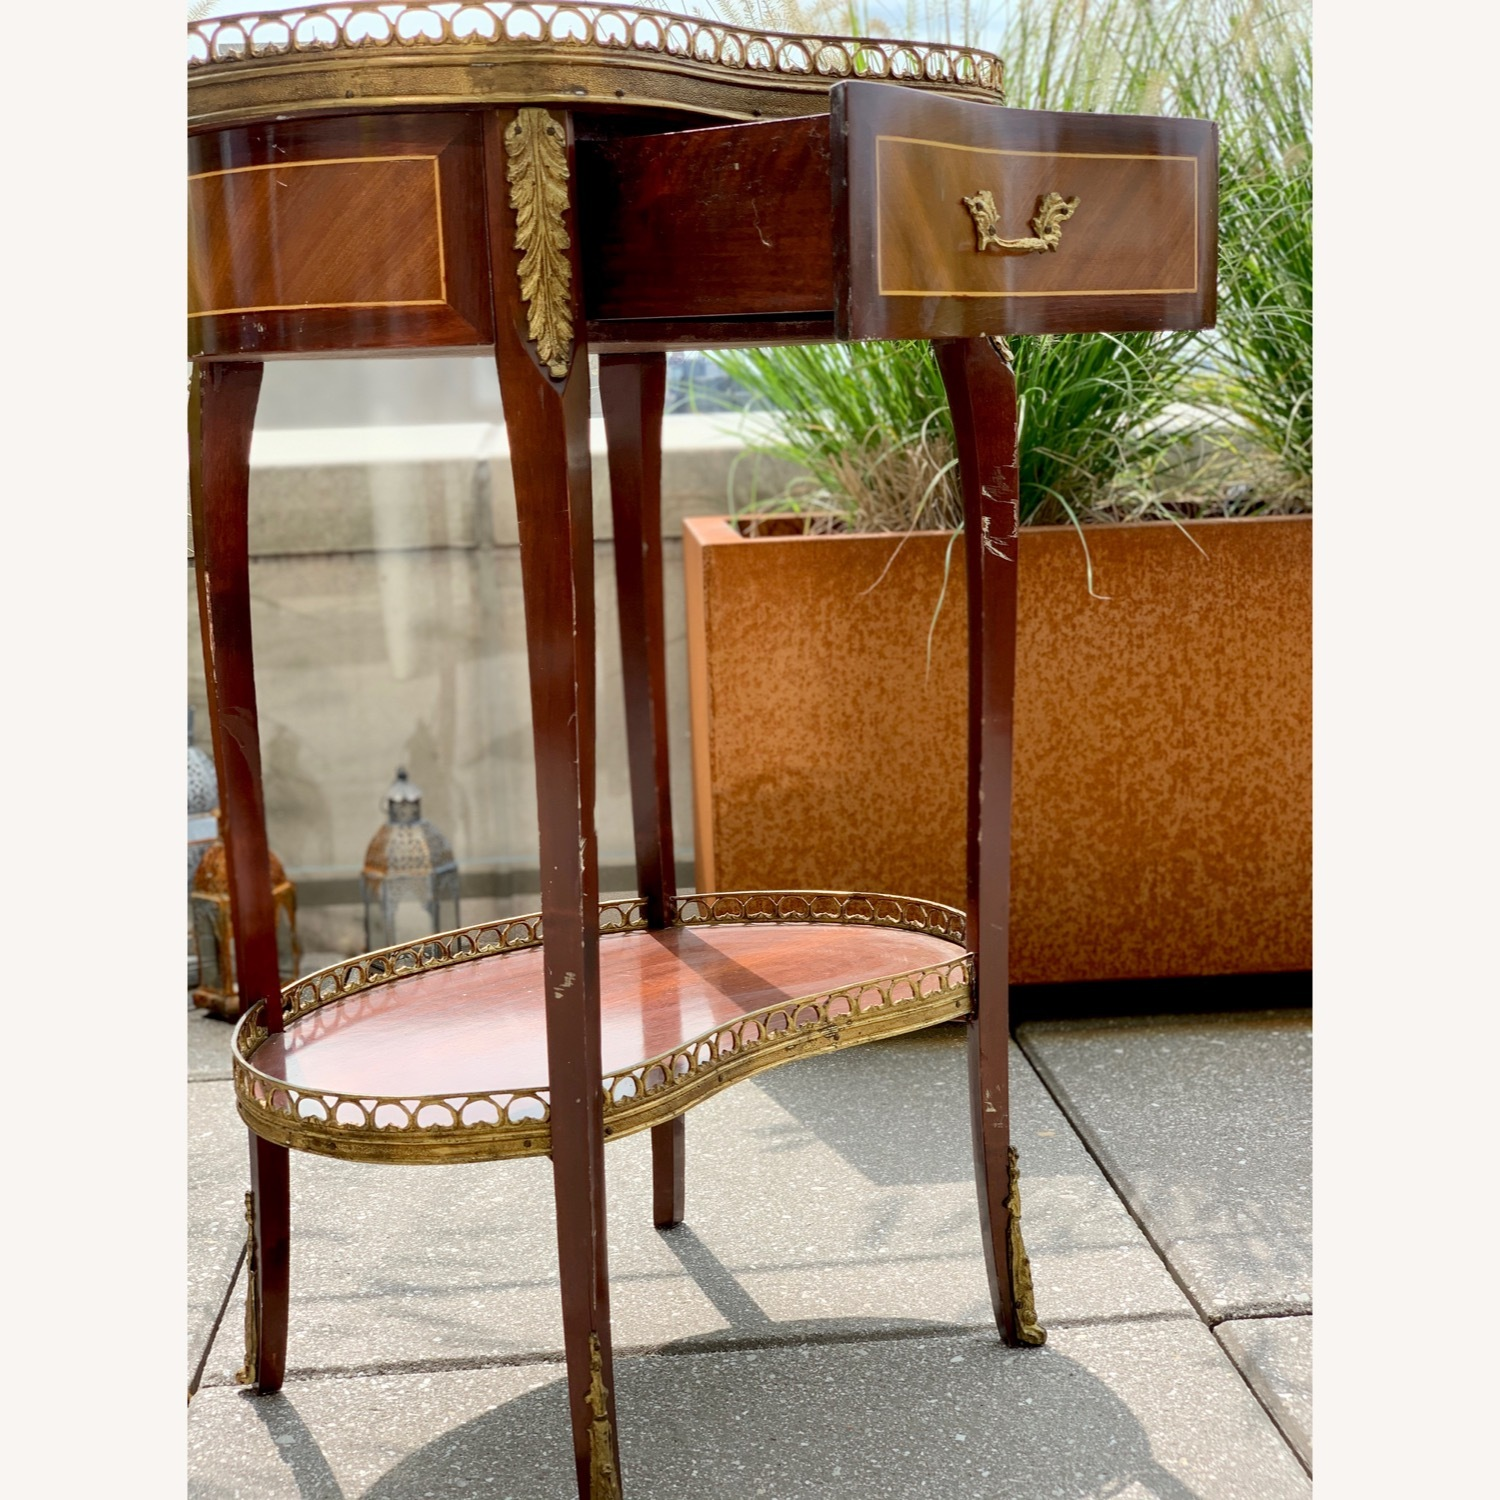 Pair of Kidney Accent Tables 50's Repro - image-6